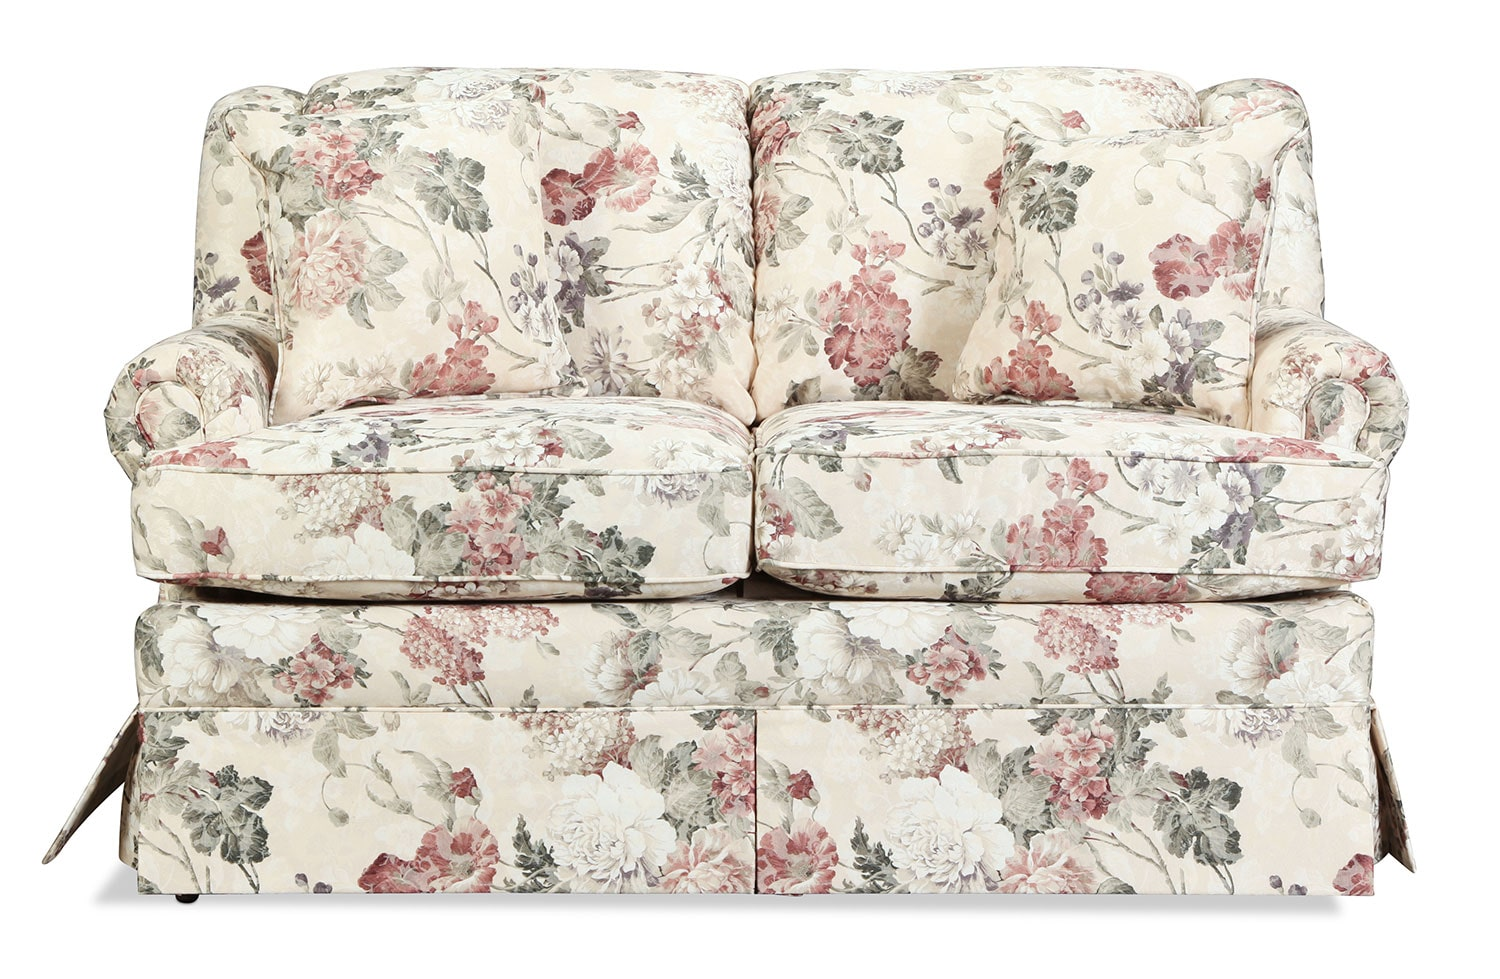 Living Room Furniture - Sofia Loveseat - Floral